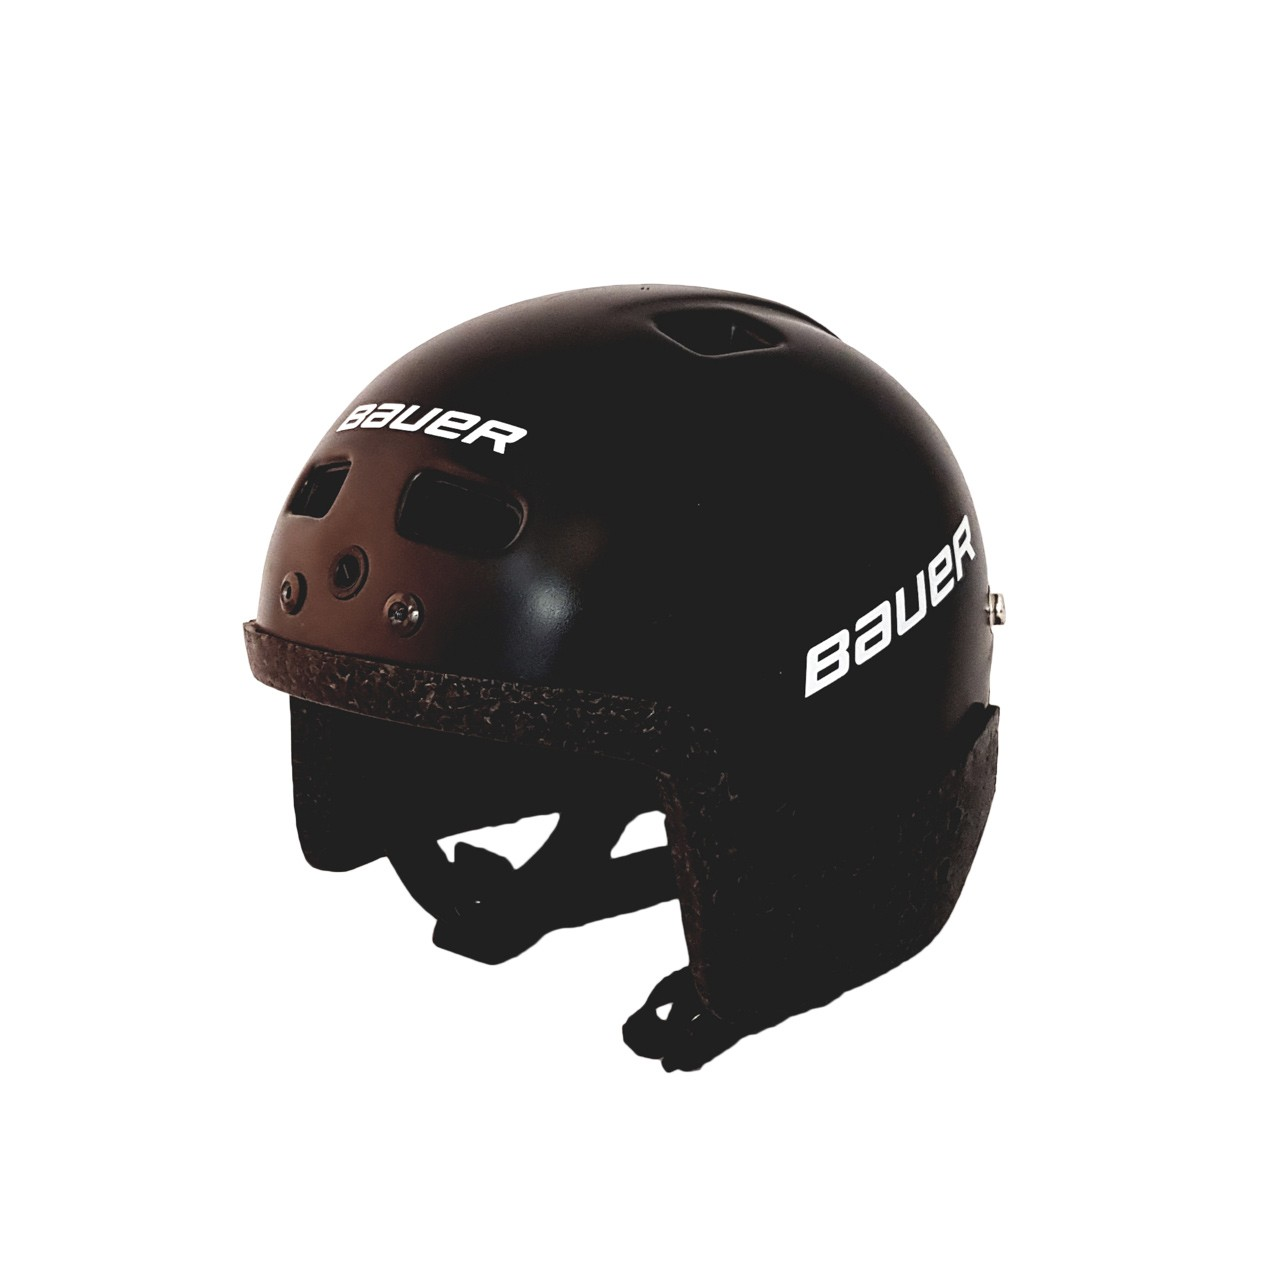 Bauer TH20 Youth Hockey Helmet